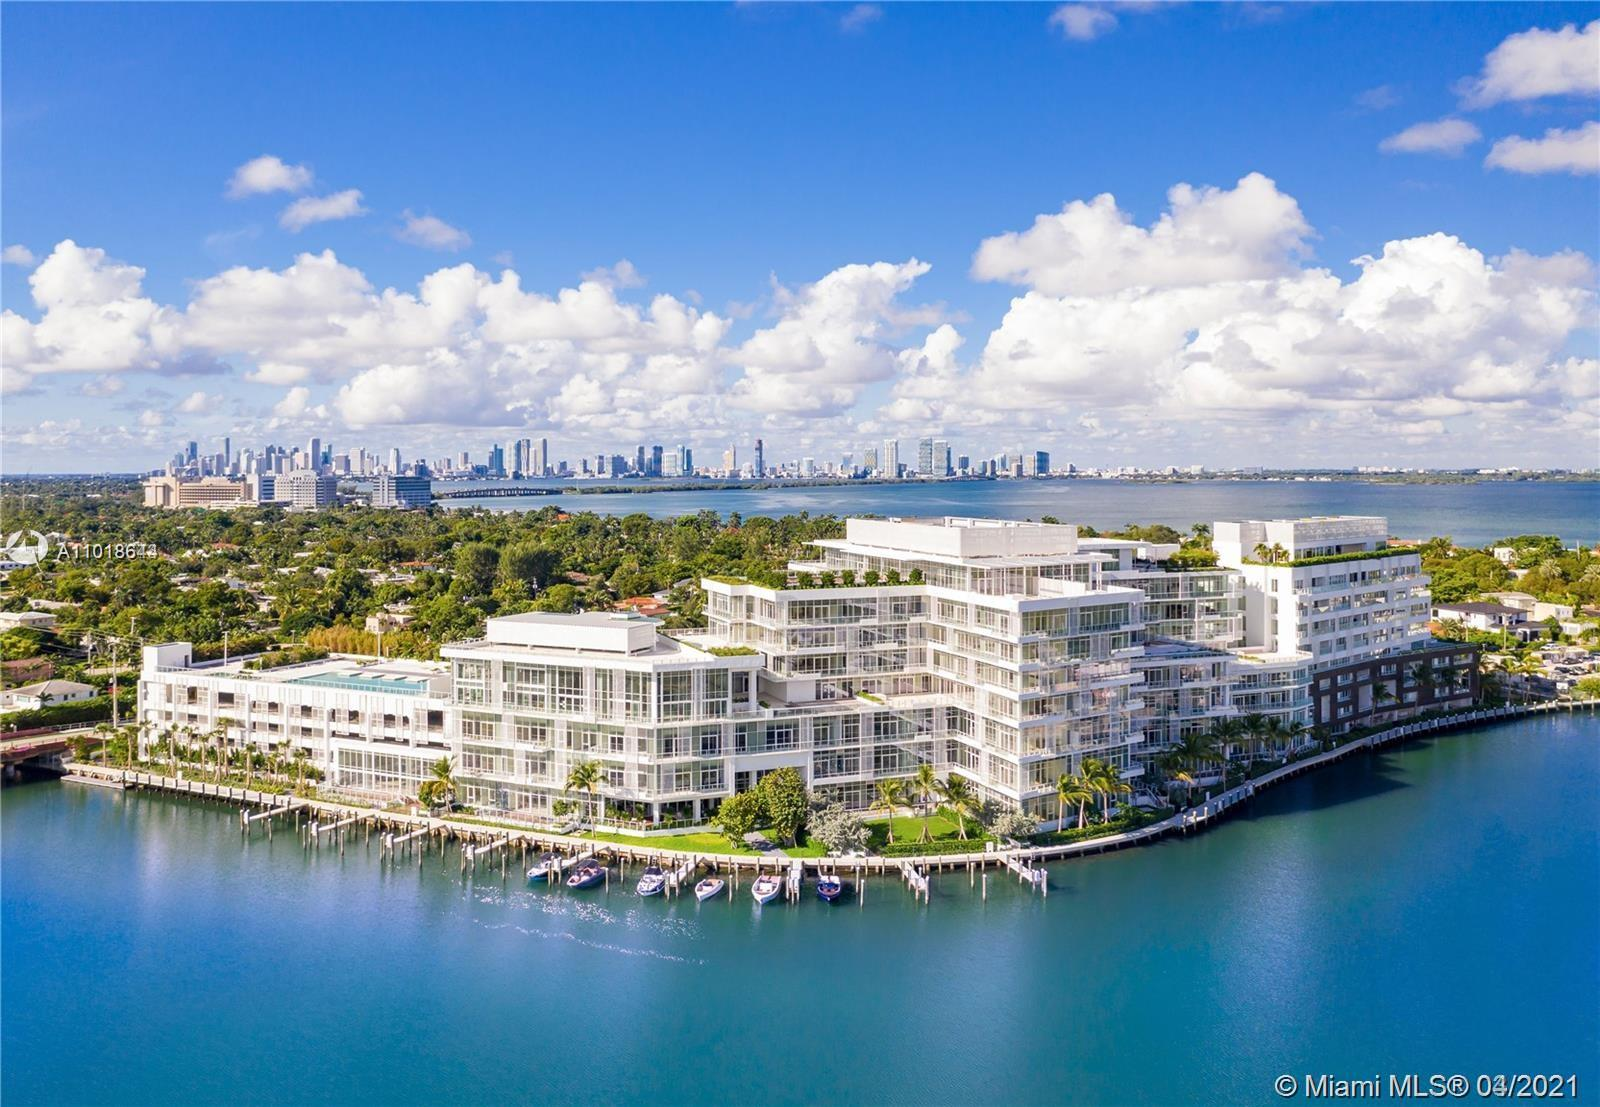 """The Villa Collection at The Ritz-Carlton Residences Miami Beach....Be one of the 15 fortunate residents who will acquire 1 of 15 Villas, complete turn-key homes with all the amenities of the luxury lifestyle of The Ritz-Carlton Residences Miami Beach. The Villas will be complete with built-in closets, motorized shades, smart house AV system, full house natural gas generator and because these are homes in a condominium your maintenance fee covers your lawn service, pool service, structure, roof, gas cooking, insurances. The 7 landside Villas range in sizes from 3,300 to 3,750 int sq, 2 car private AC Garage, Boffi kitchen and bath cabinetry, Gaggenau appliances w/gas 5 burner range, wine cabinet, 36"""" oven, steam oven, side by side refrigerator/freezer, warming drawer, in wall coffee."""